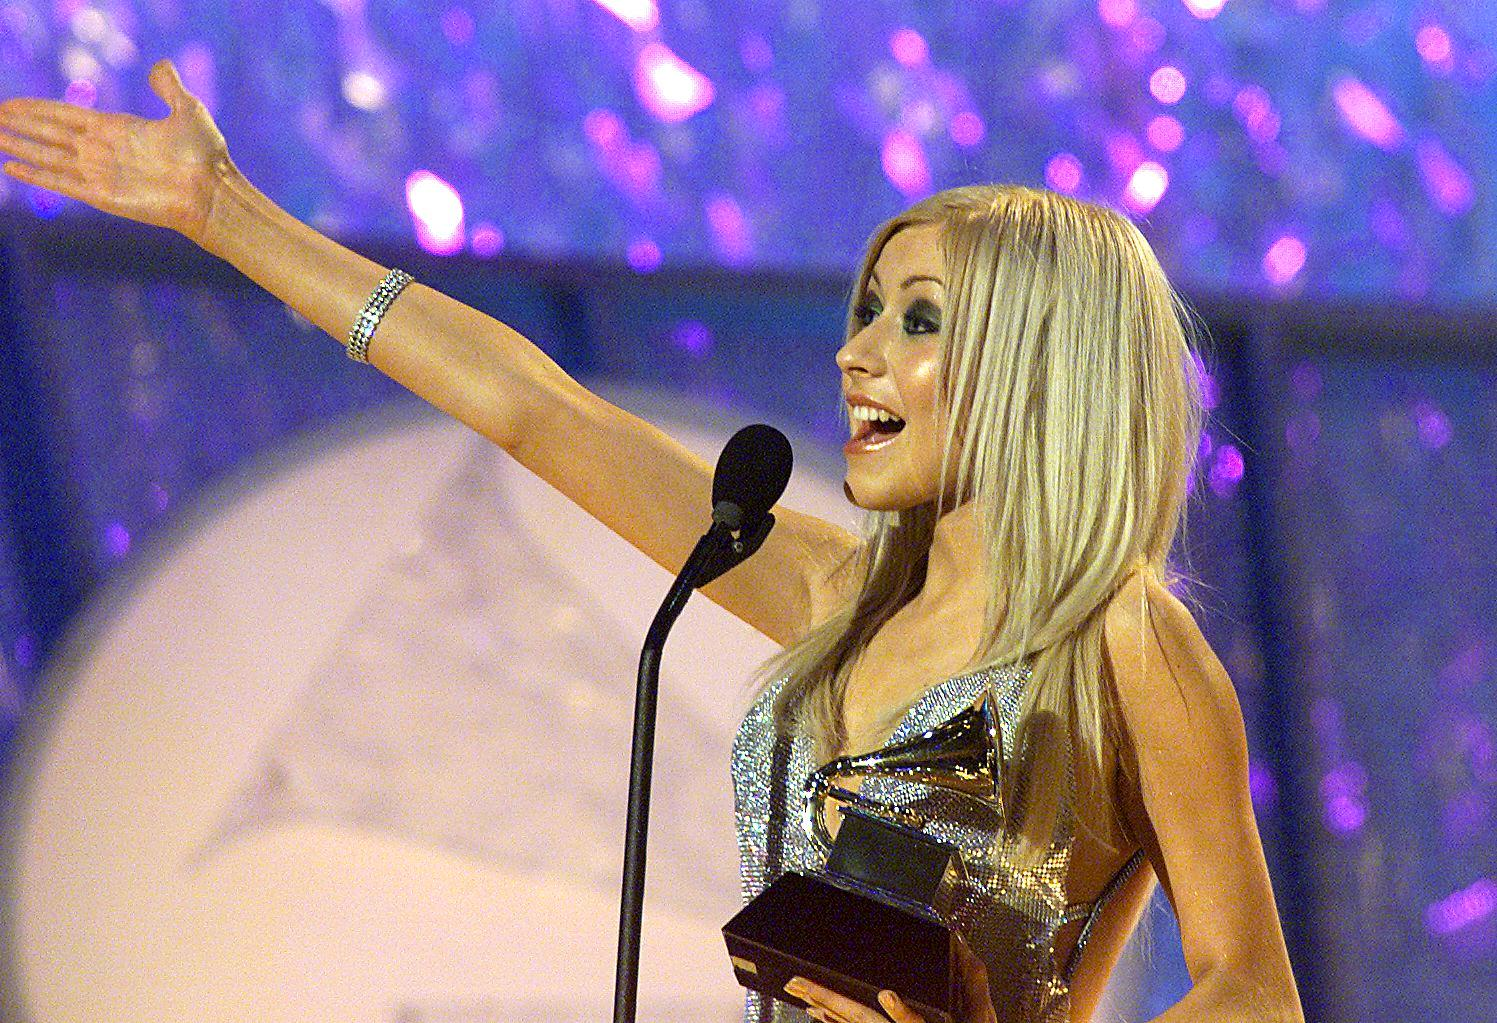 In 2000, Christina Aguilera won an Best New Artist Grammy.